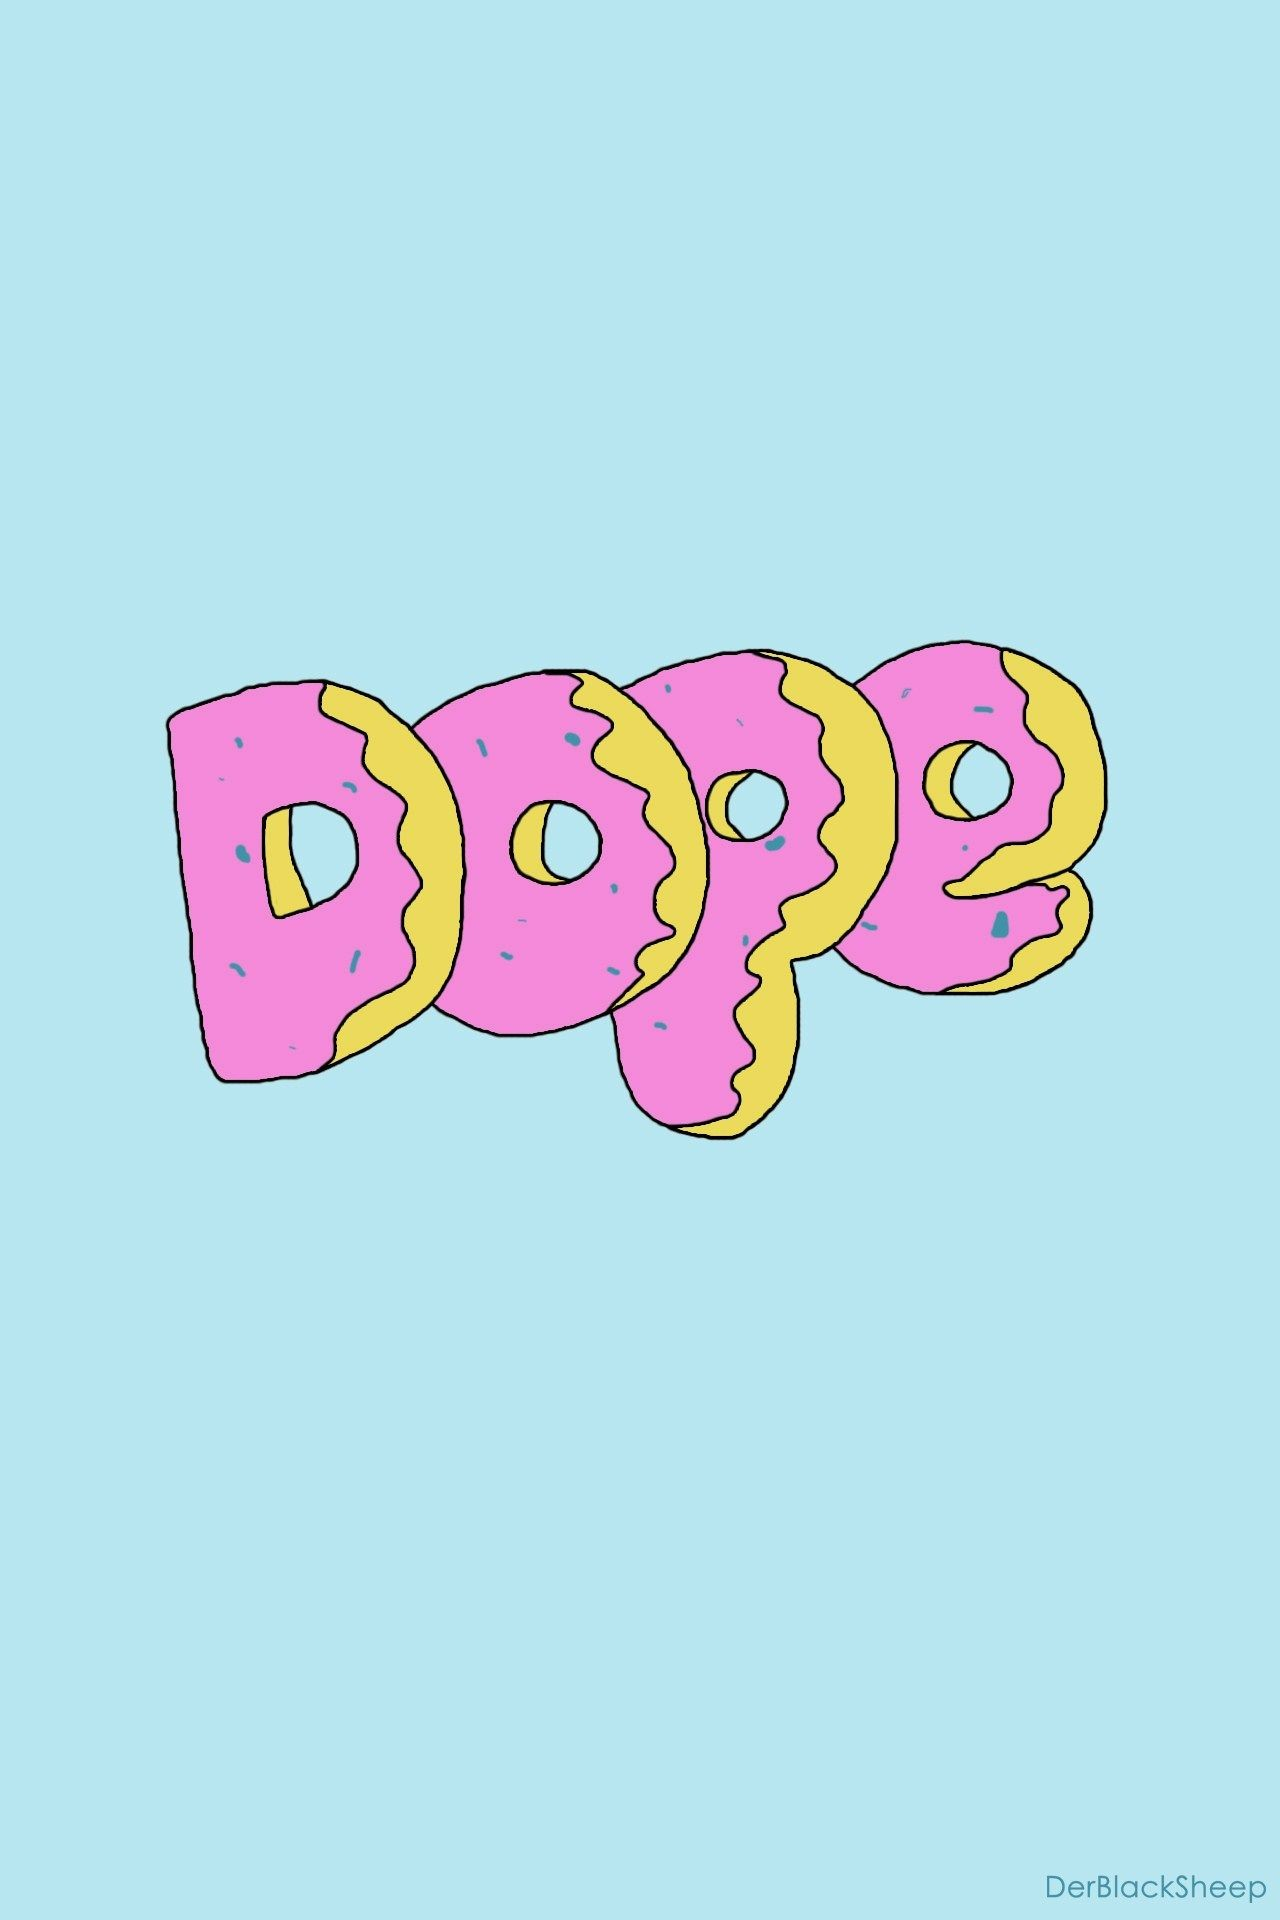 Res: 1280x1920, Wallpaper Backgrounds, Dope Wallpapers, Odd Future Wallpapers, Bape Wallpaper Iphone, Iphone Wallpapers, Dope Art, Backrounds, Headers, Trippy